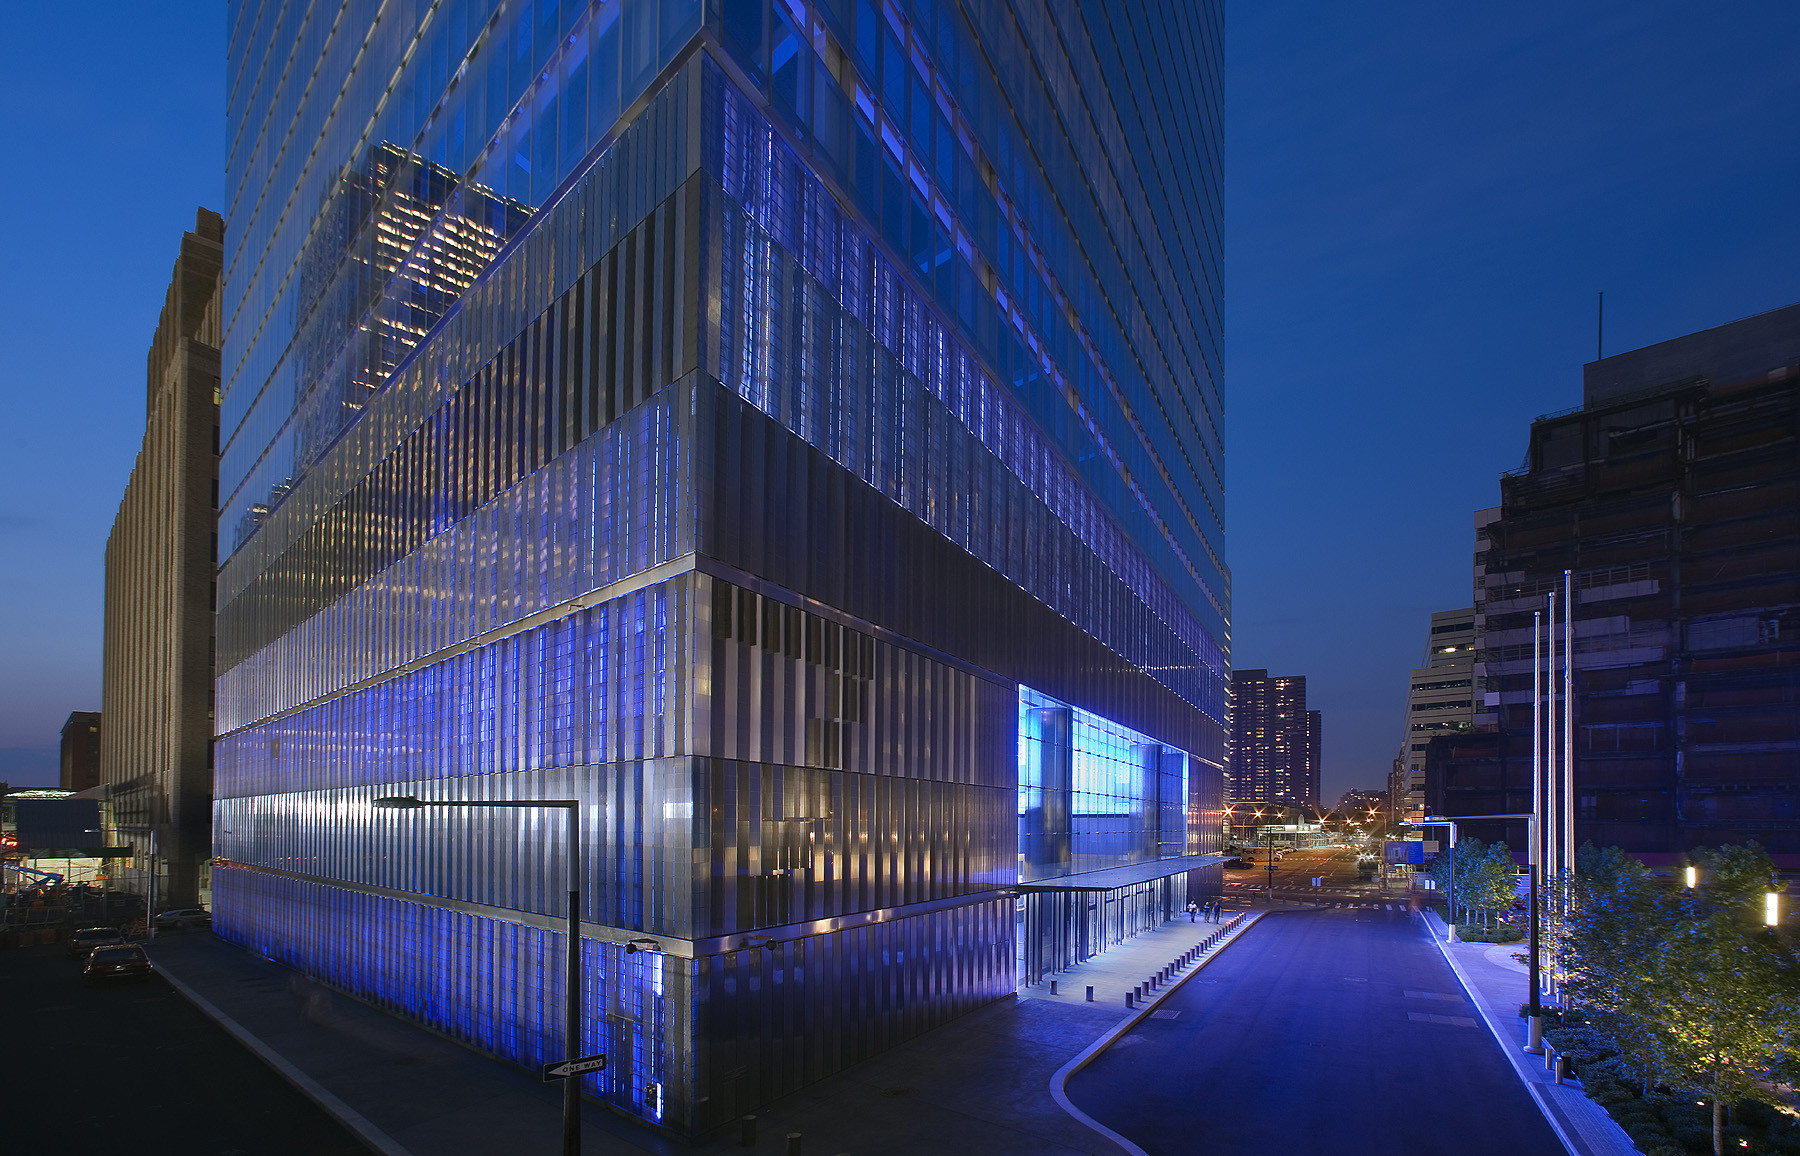 Light Matters: Glass Beyond Transparency with James Carpenter, 7 World Trade Center. New York, NY 2003-2007. Image © David Sundberg